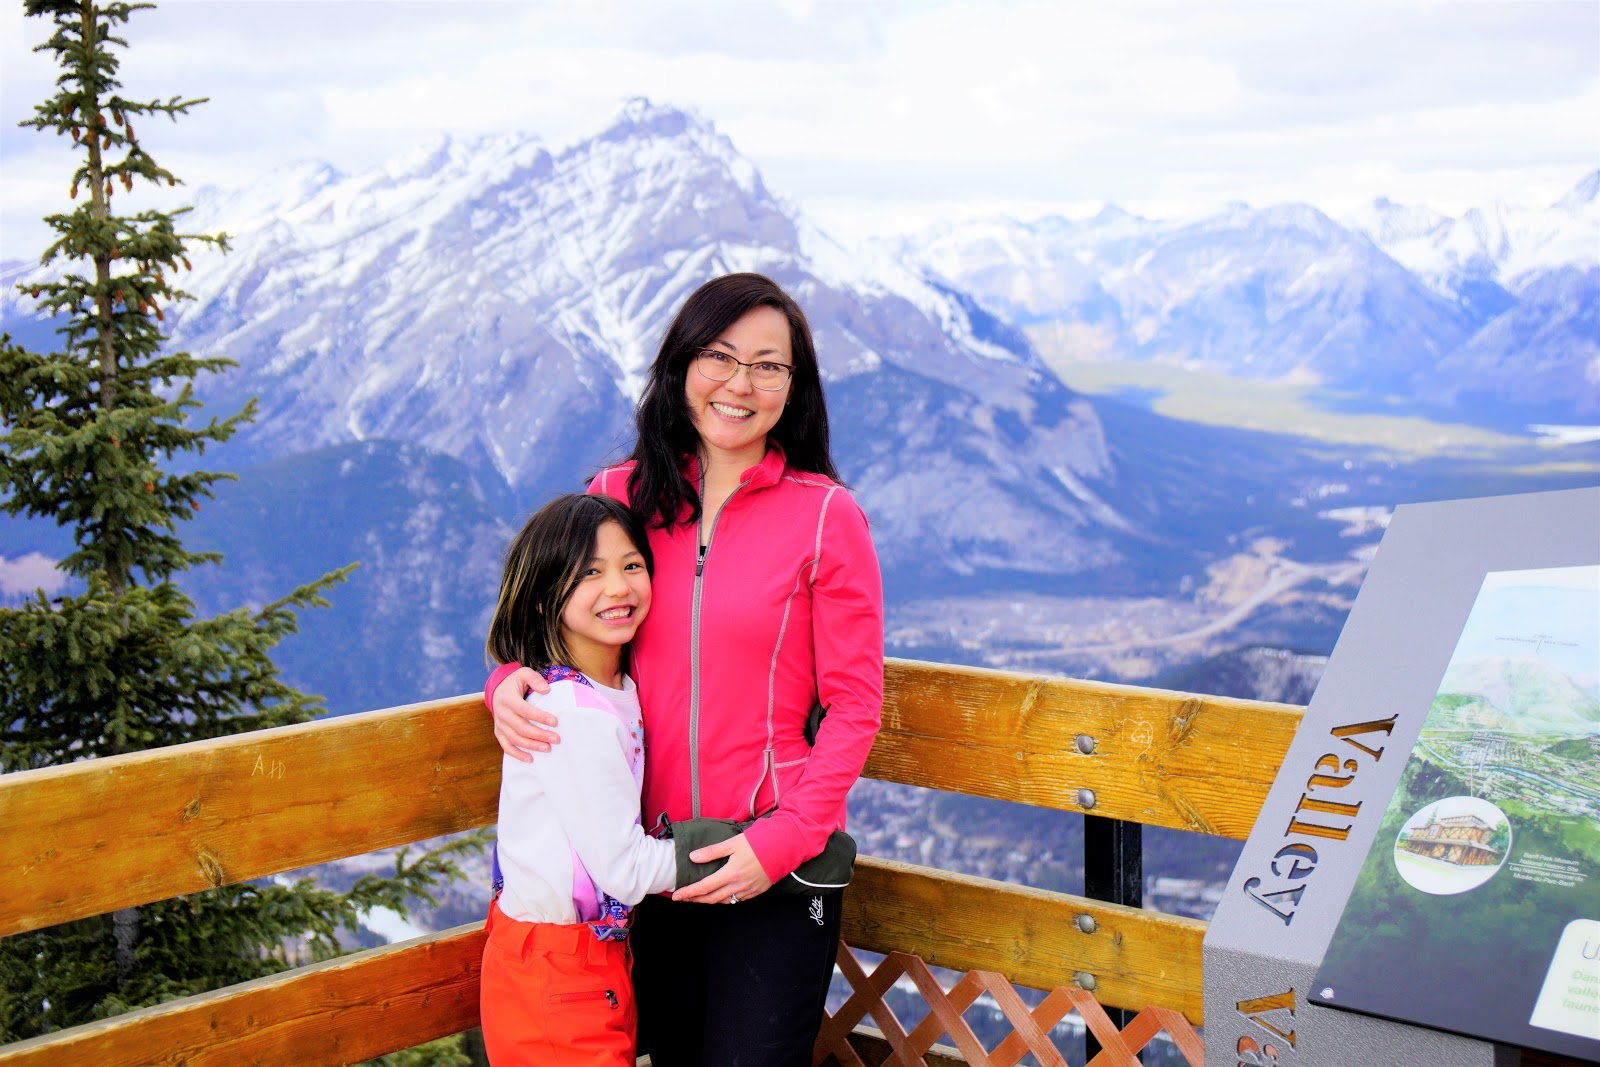 Sulphur Mountain Boardwalk, Banff